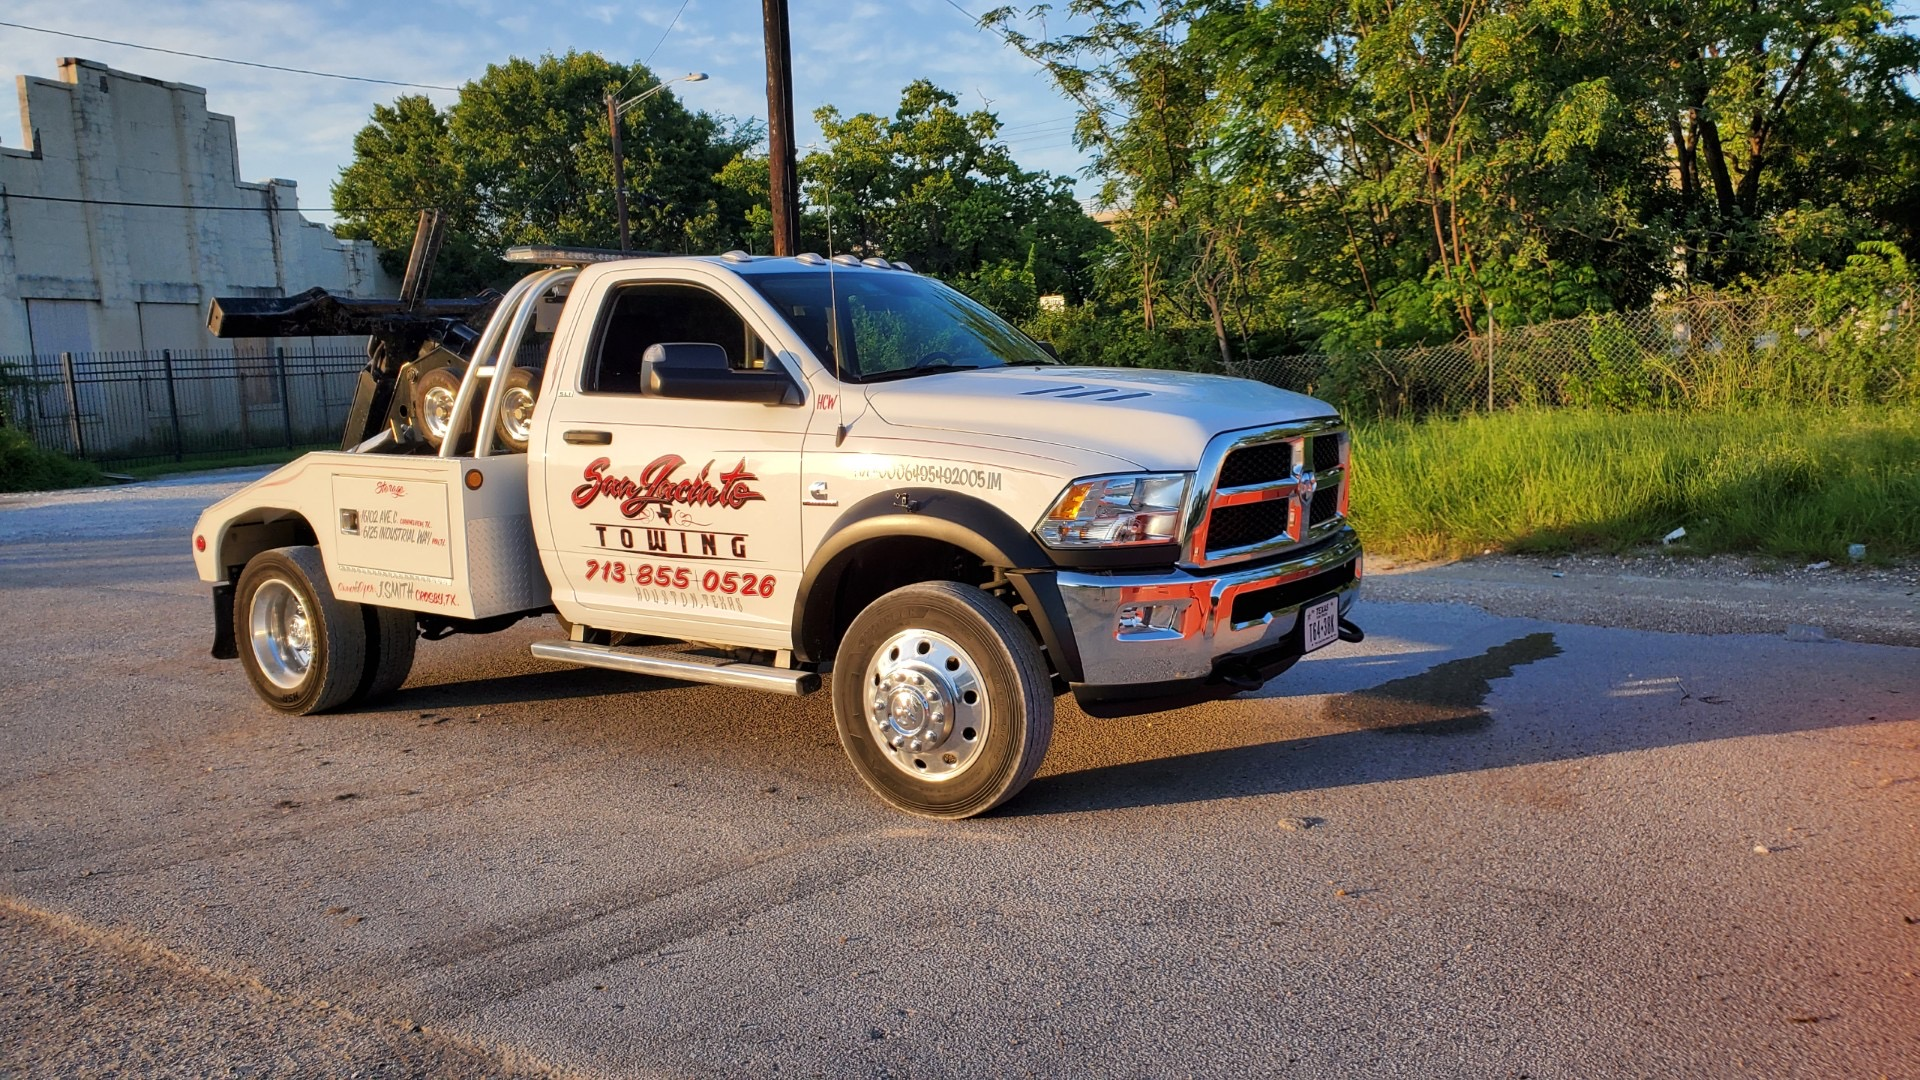 Jeff Smith Baytown Towing, light duty towing service for cars, trucks and SUVs